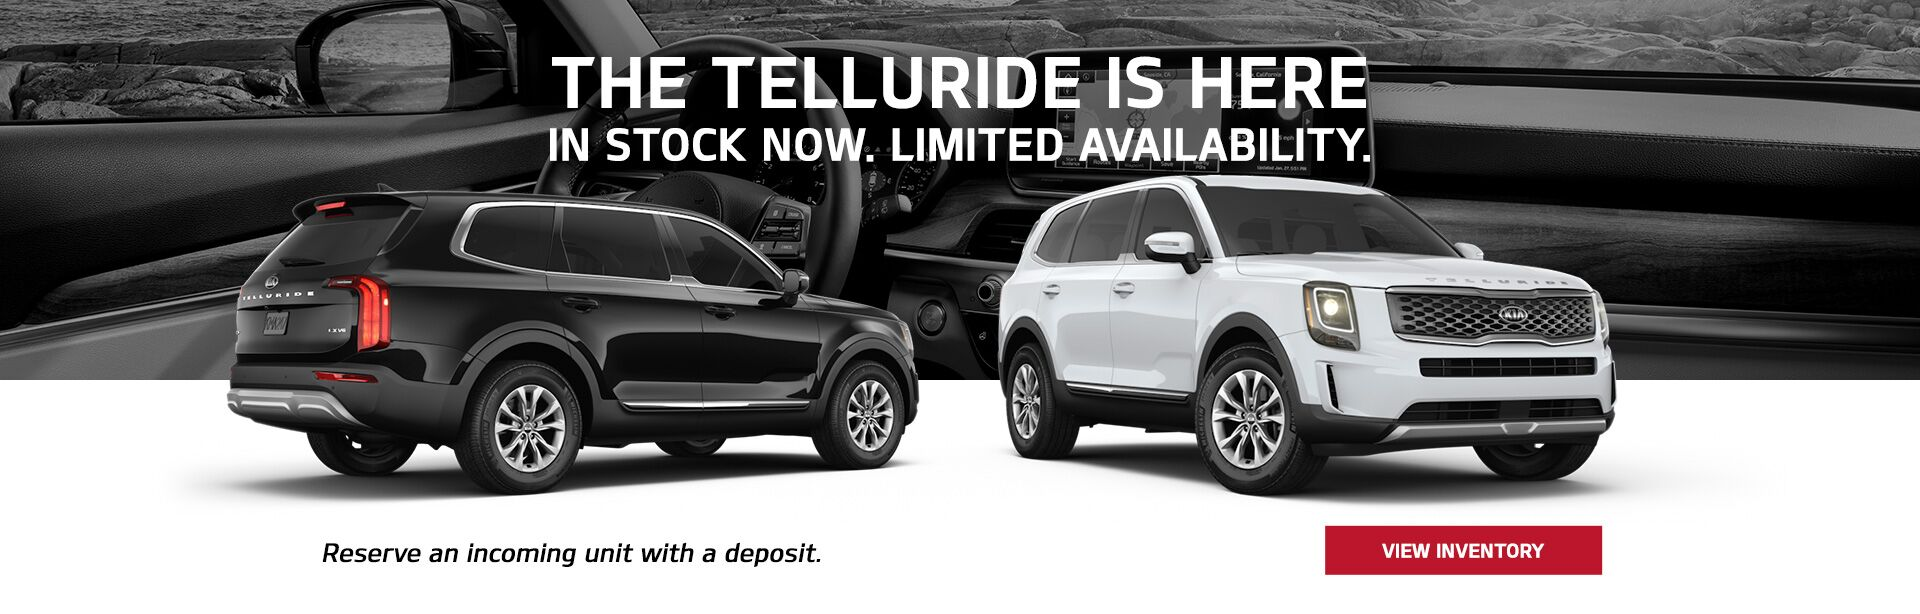 The Telluride Is Here